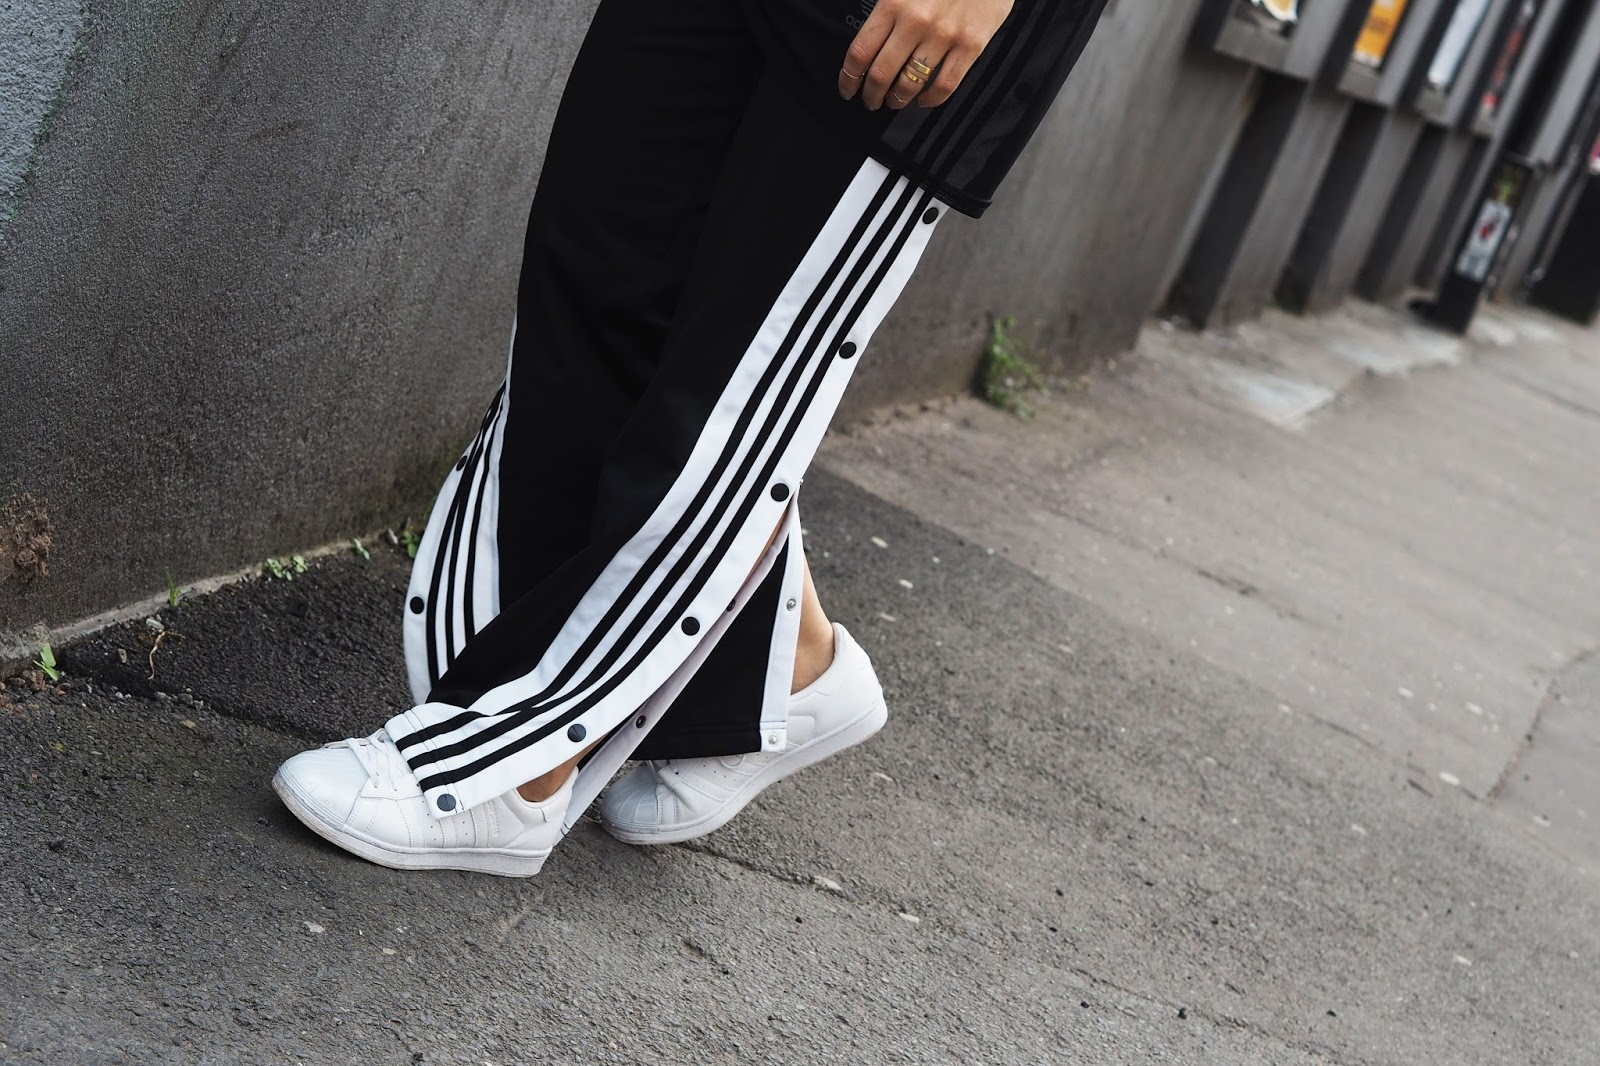 fe579a6c815 HOW TO WEAR THOSE ADIDAS POPPER TRACKSUIT PANTS | UK WOMEN'S FASHION ...